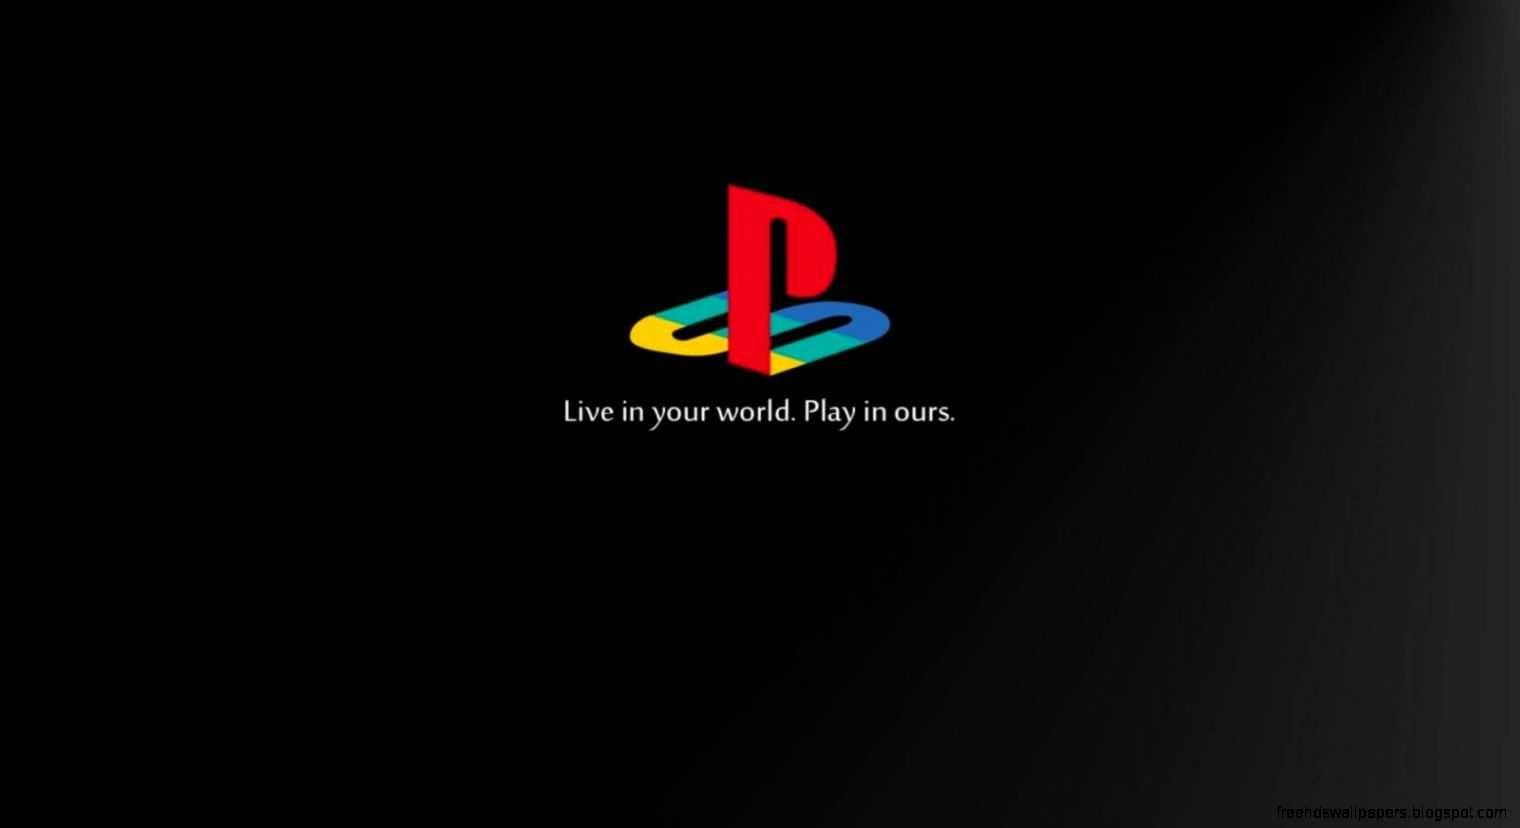 Unspecified Png Source Wallpapers For Your Ps3 Wallpaper Cave